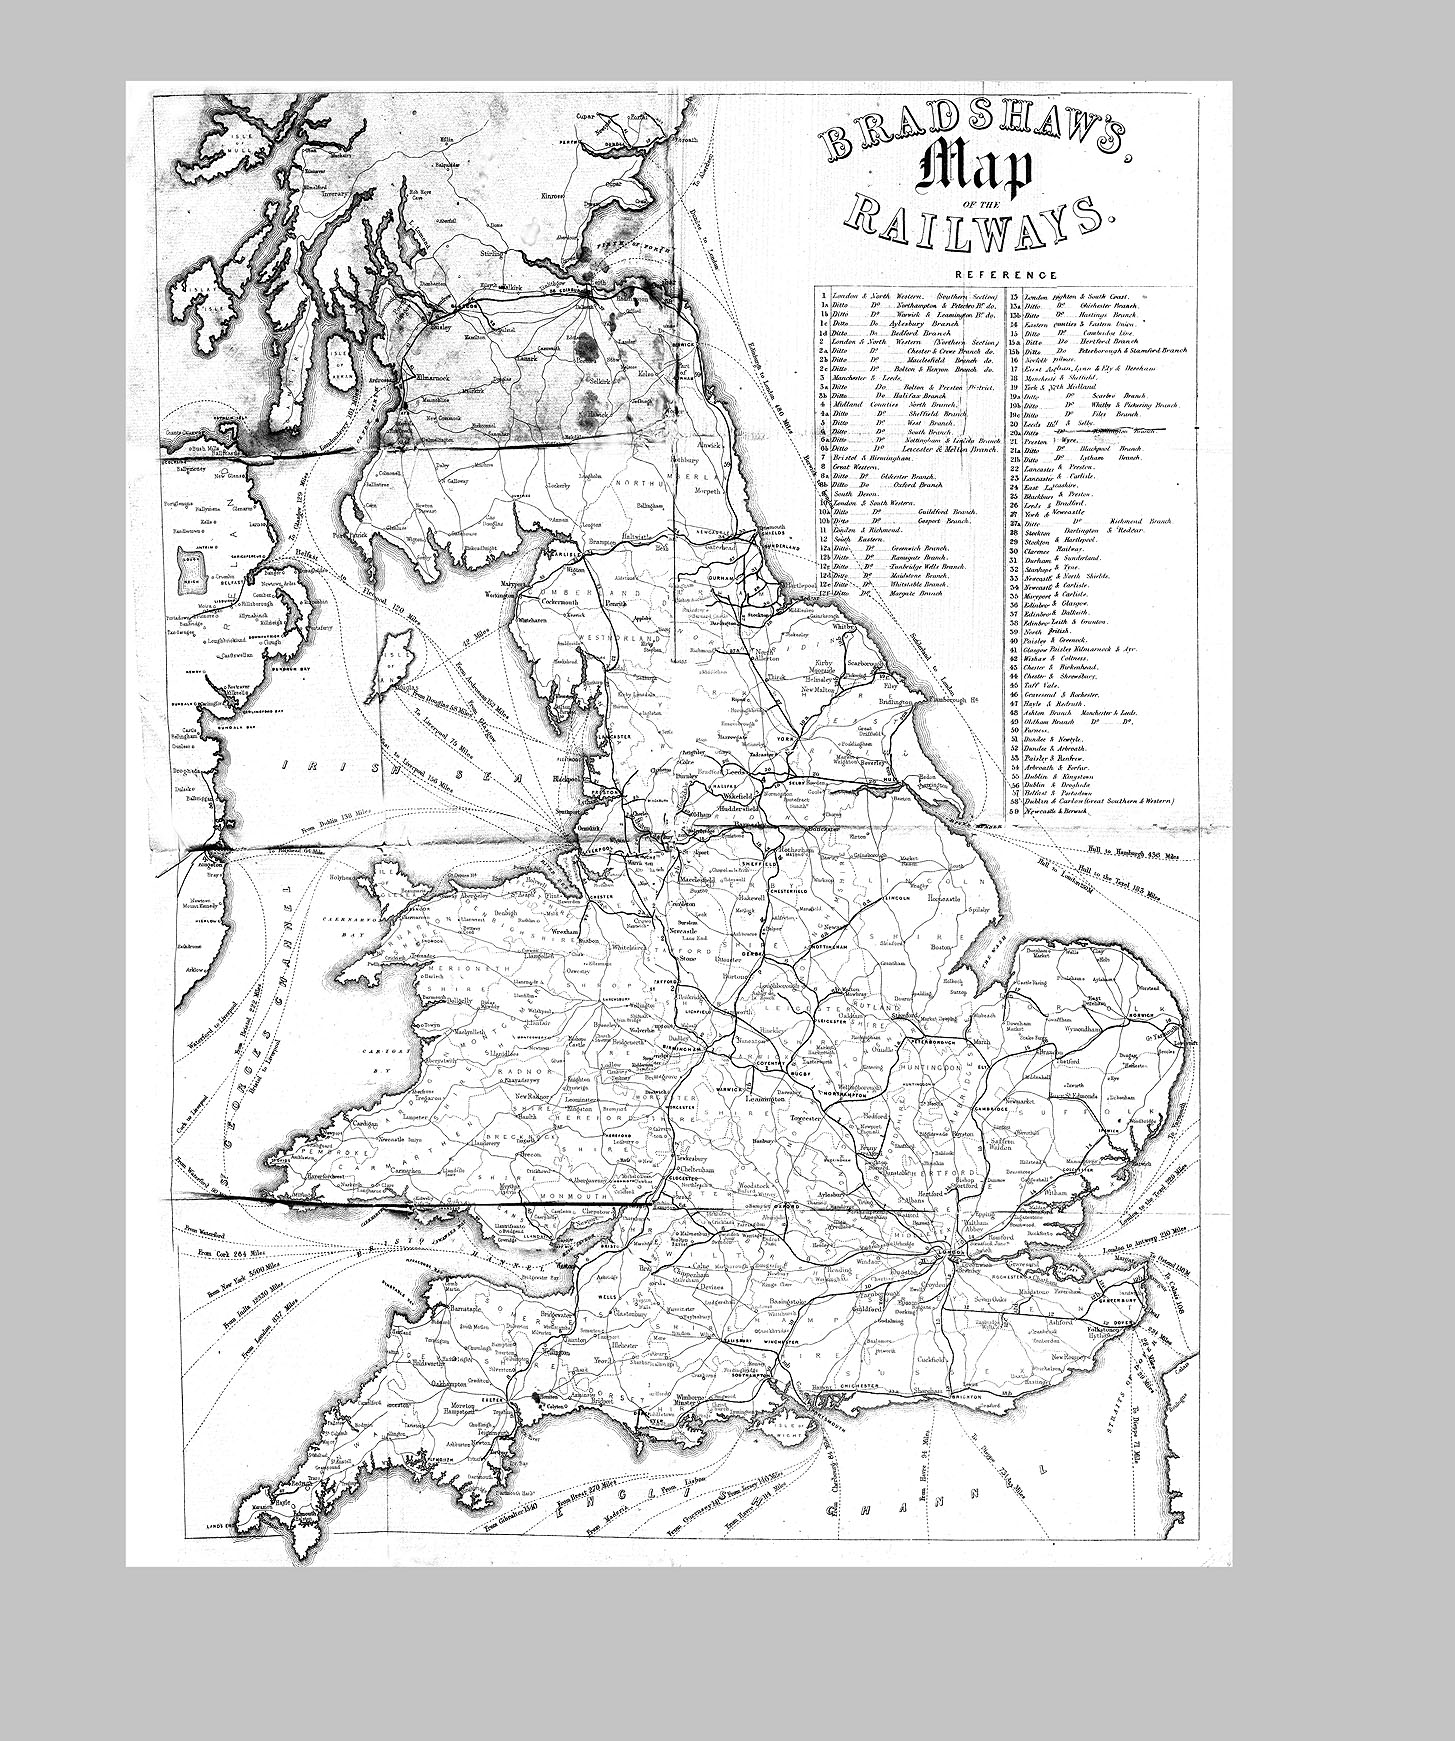 hight resolution of examine route maps for the railways such as the 1850 bradshaw s map of the railways on the consulting detective website